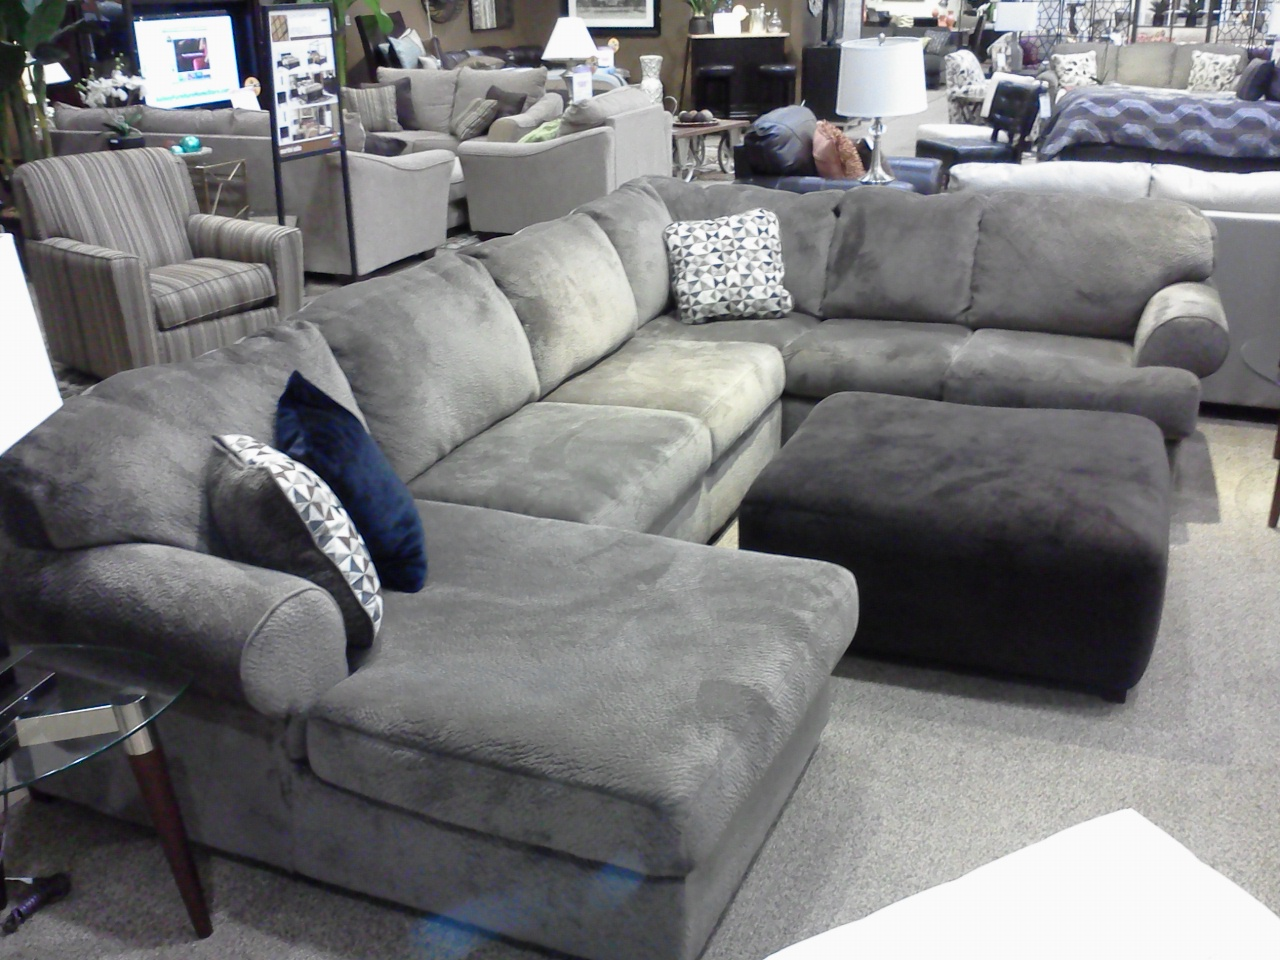 The Radkes A Rome In Rosemont Ashley Furniture Has Layaway Who - Ashley furniture pineville nc